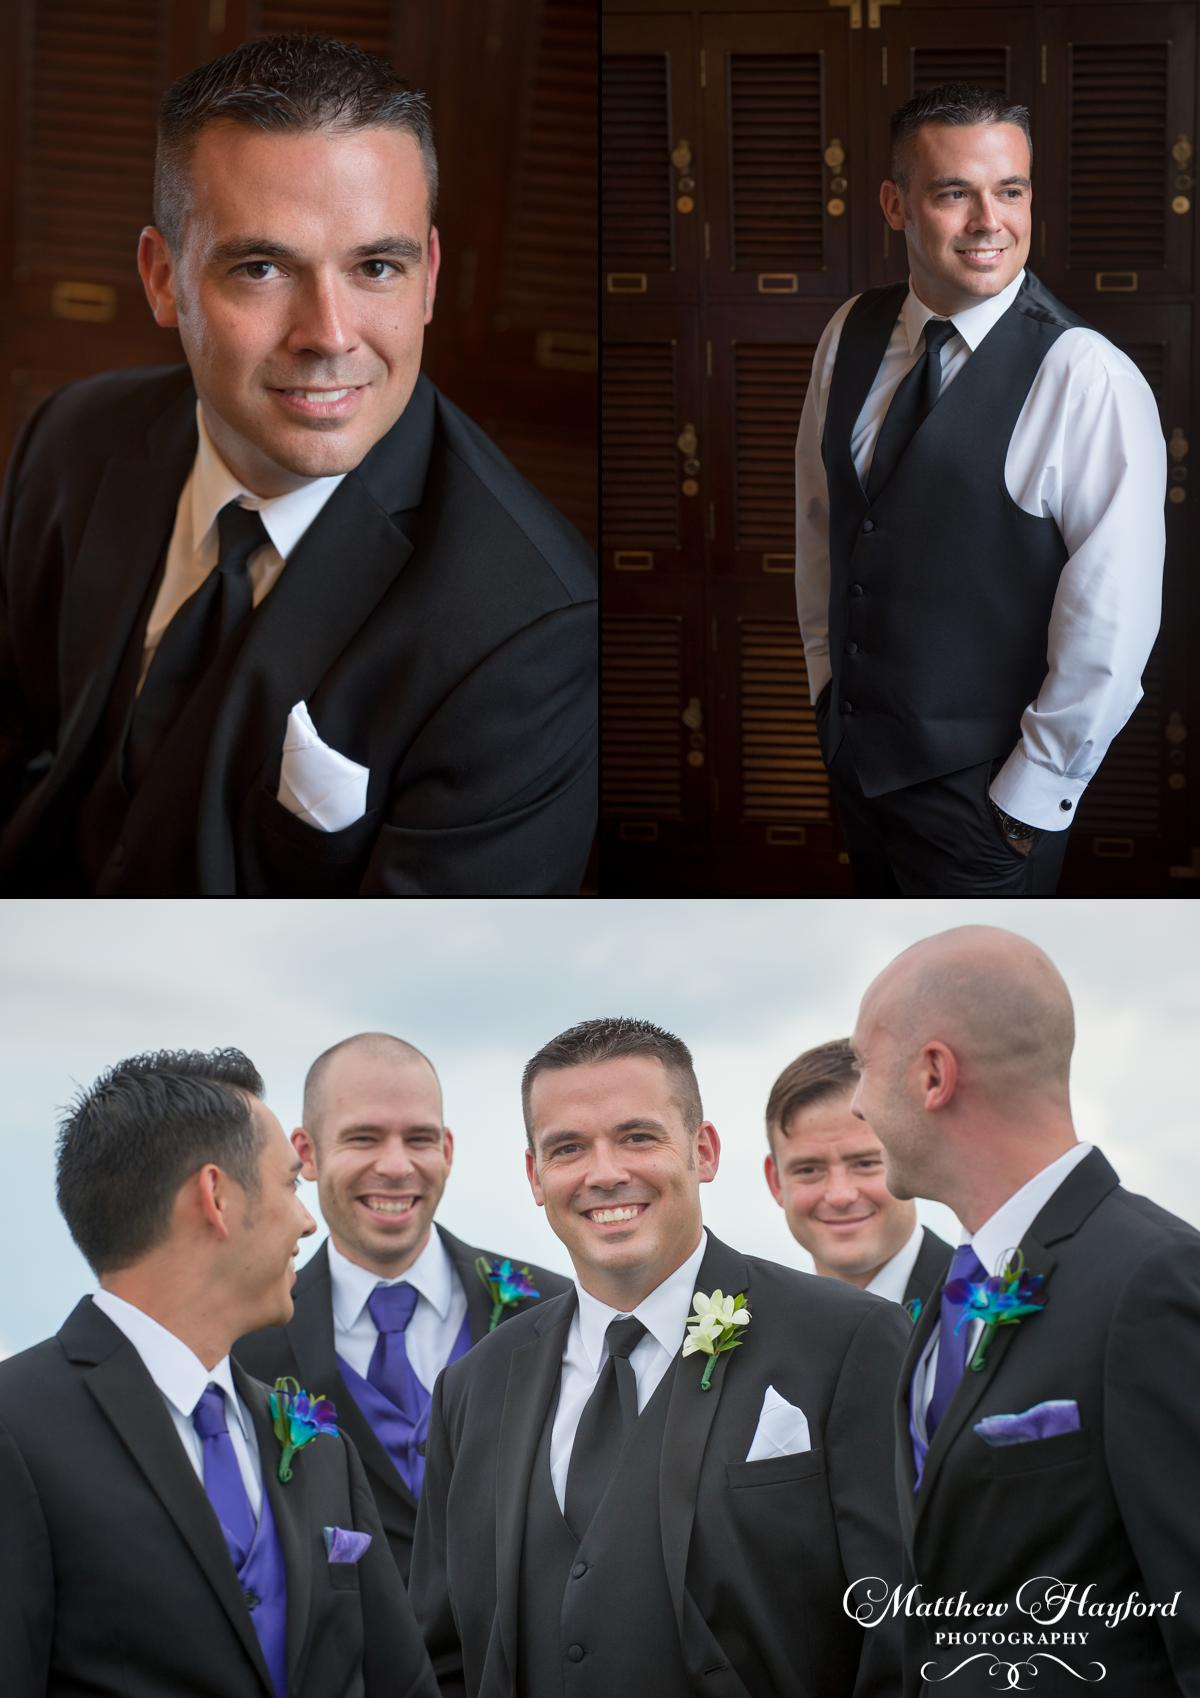 Groom Portraits The Royal Crest Room by Matthew Hayford Photography